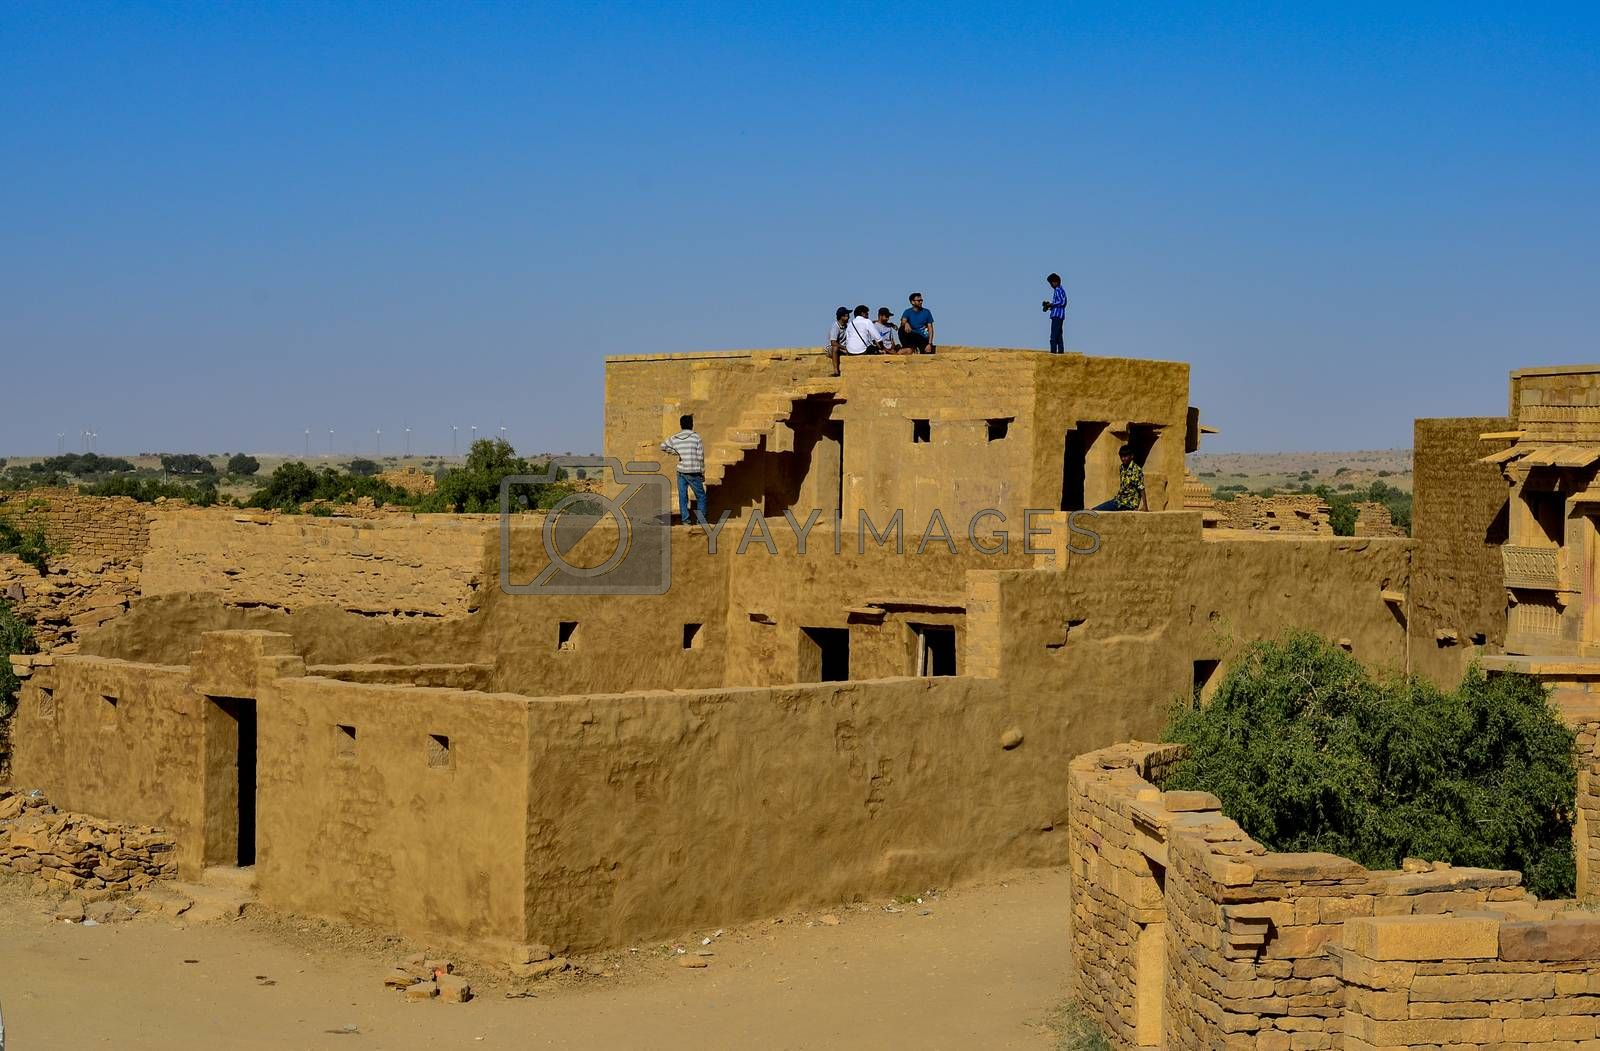 Rajasthan, India, 2020. House in the cityscape of abandoned town of Kuldhara near Jaisalmer on the way to Sam Sand Dunes. Around 13th century, once a prosperous village inhabited by Paliwal Brahmins